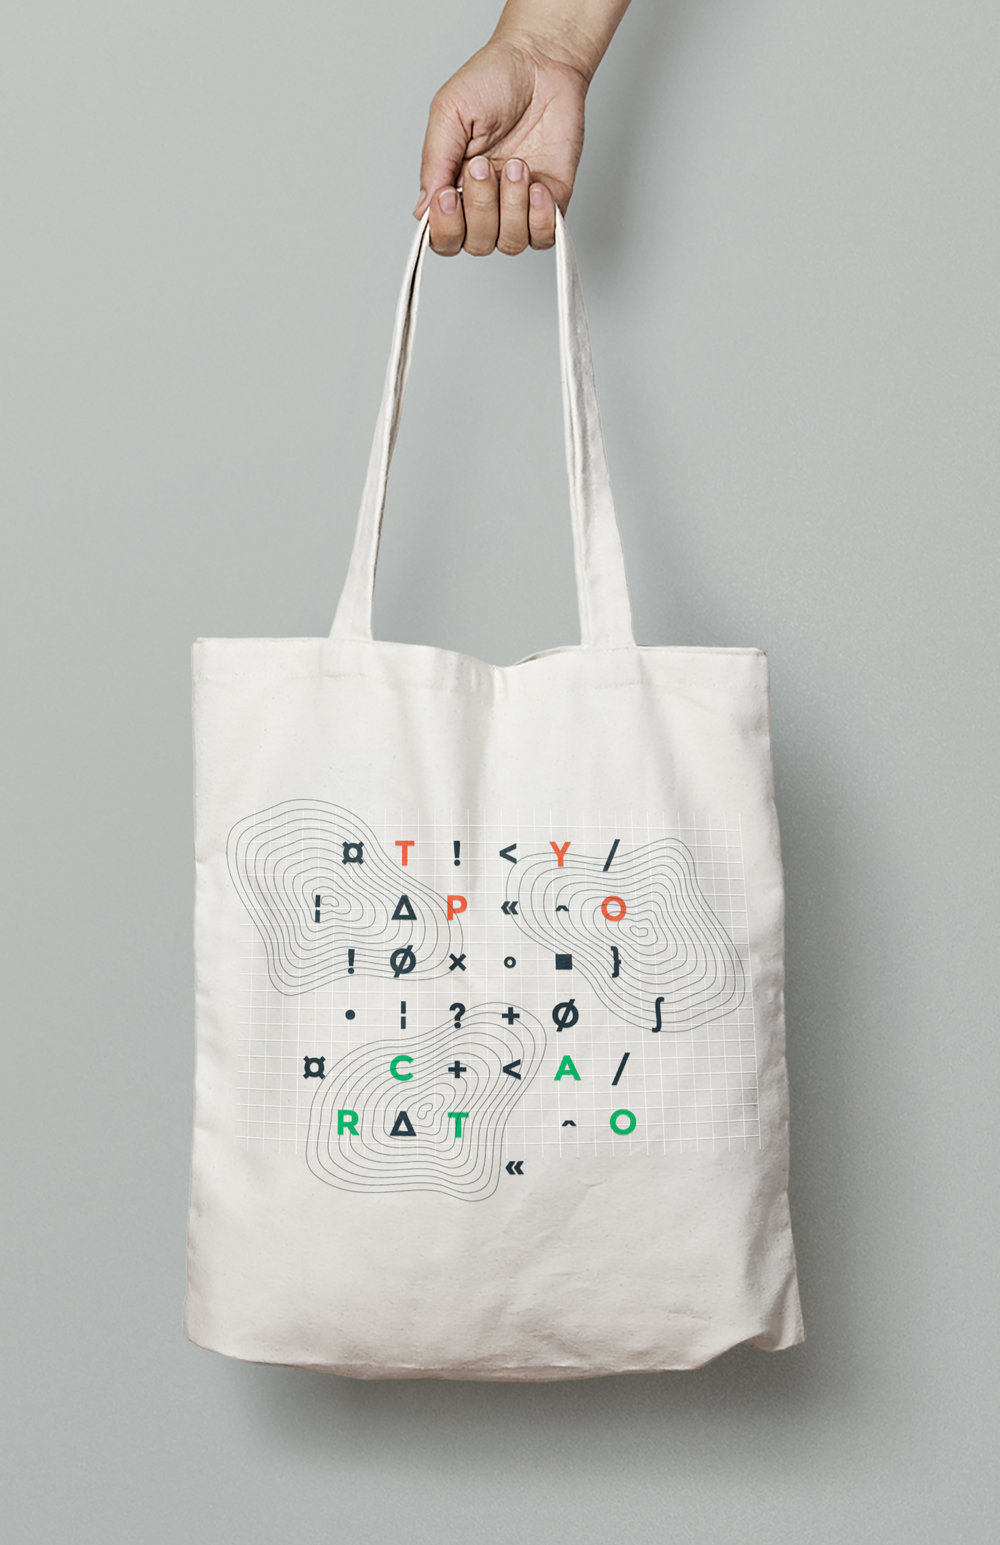 tote_bag_mock_up.jpg